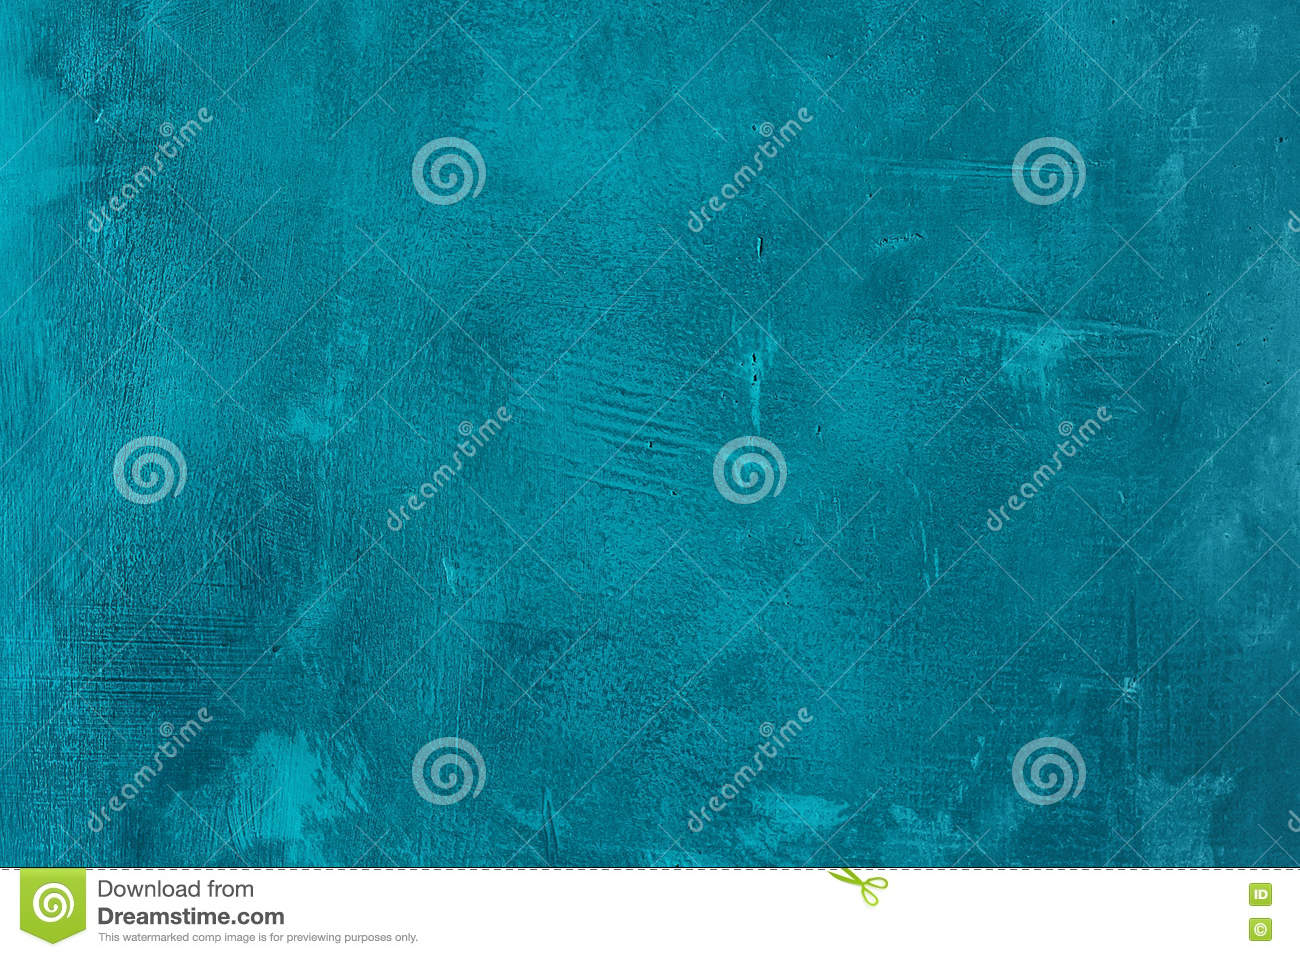 Old scratched and chapped painted blue wall. Abstract textured turquoise background. Empty template